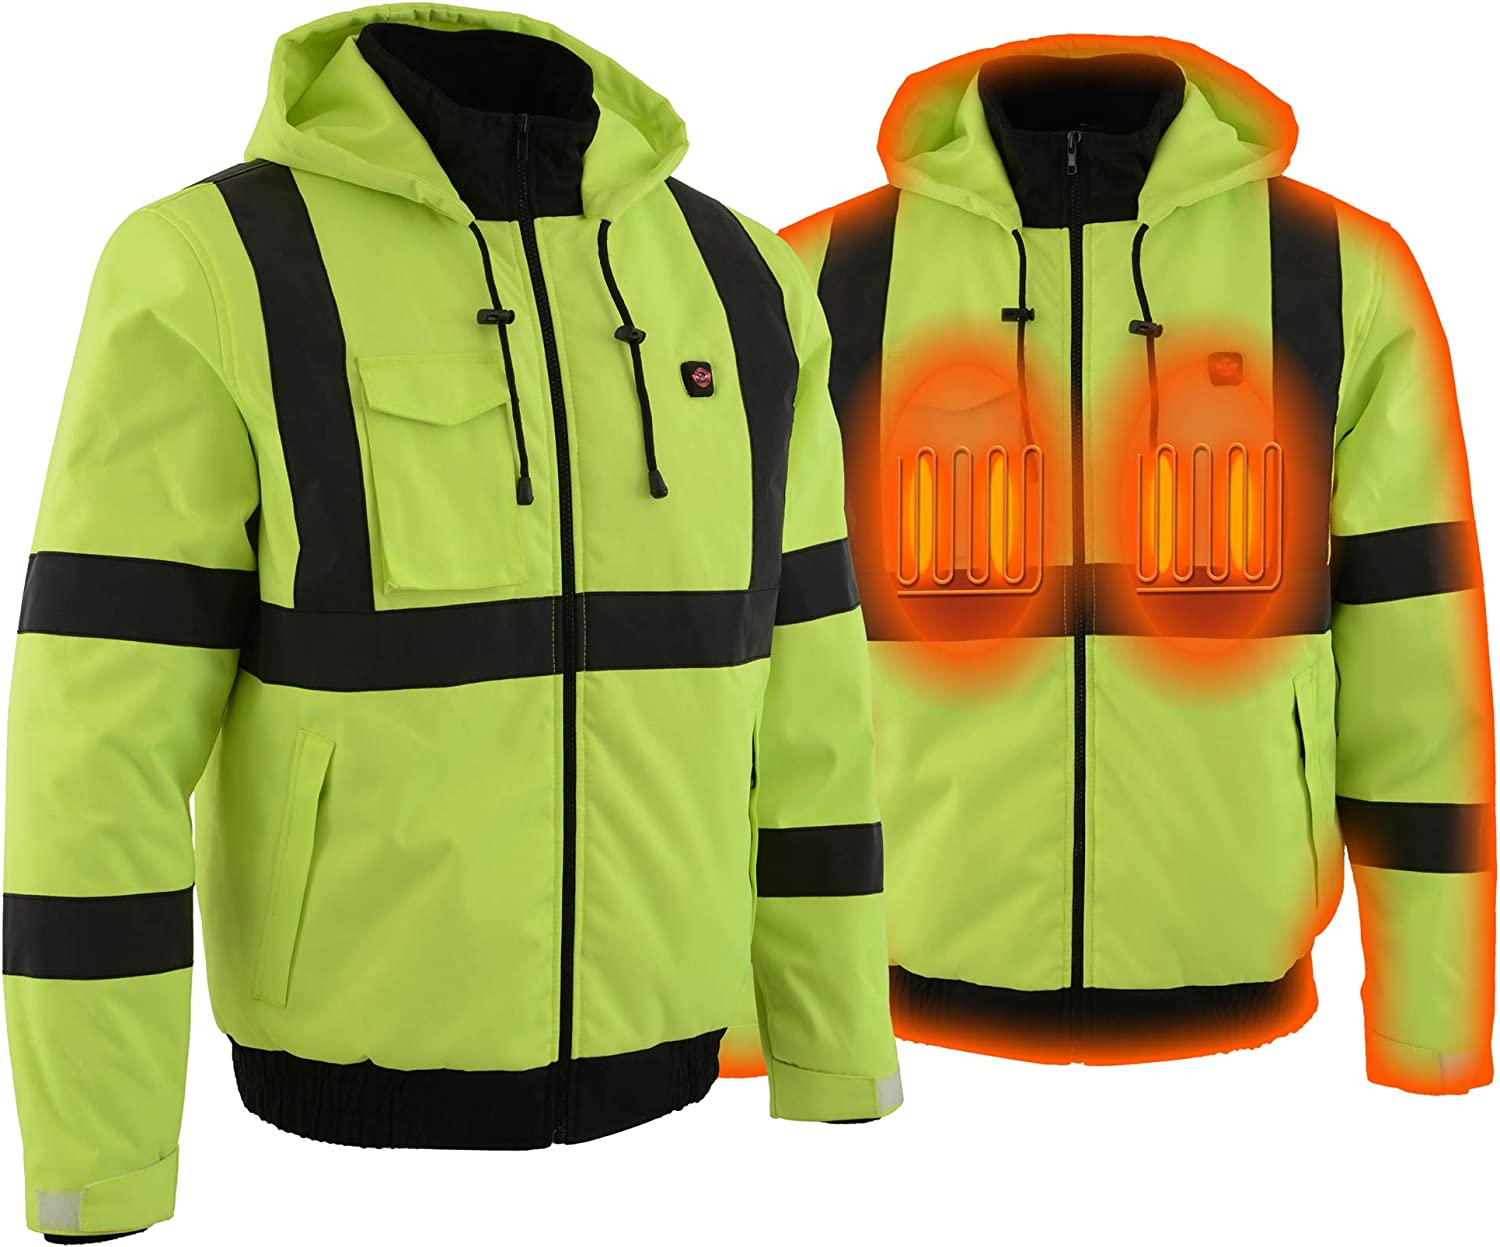 Milwaukee Leather High Viz Men's Textile Jacket W/Heating Elements - Battery Included (NEON GREEN, LG)